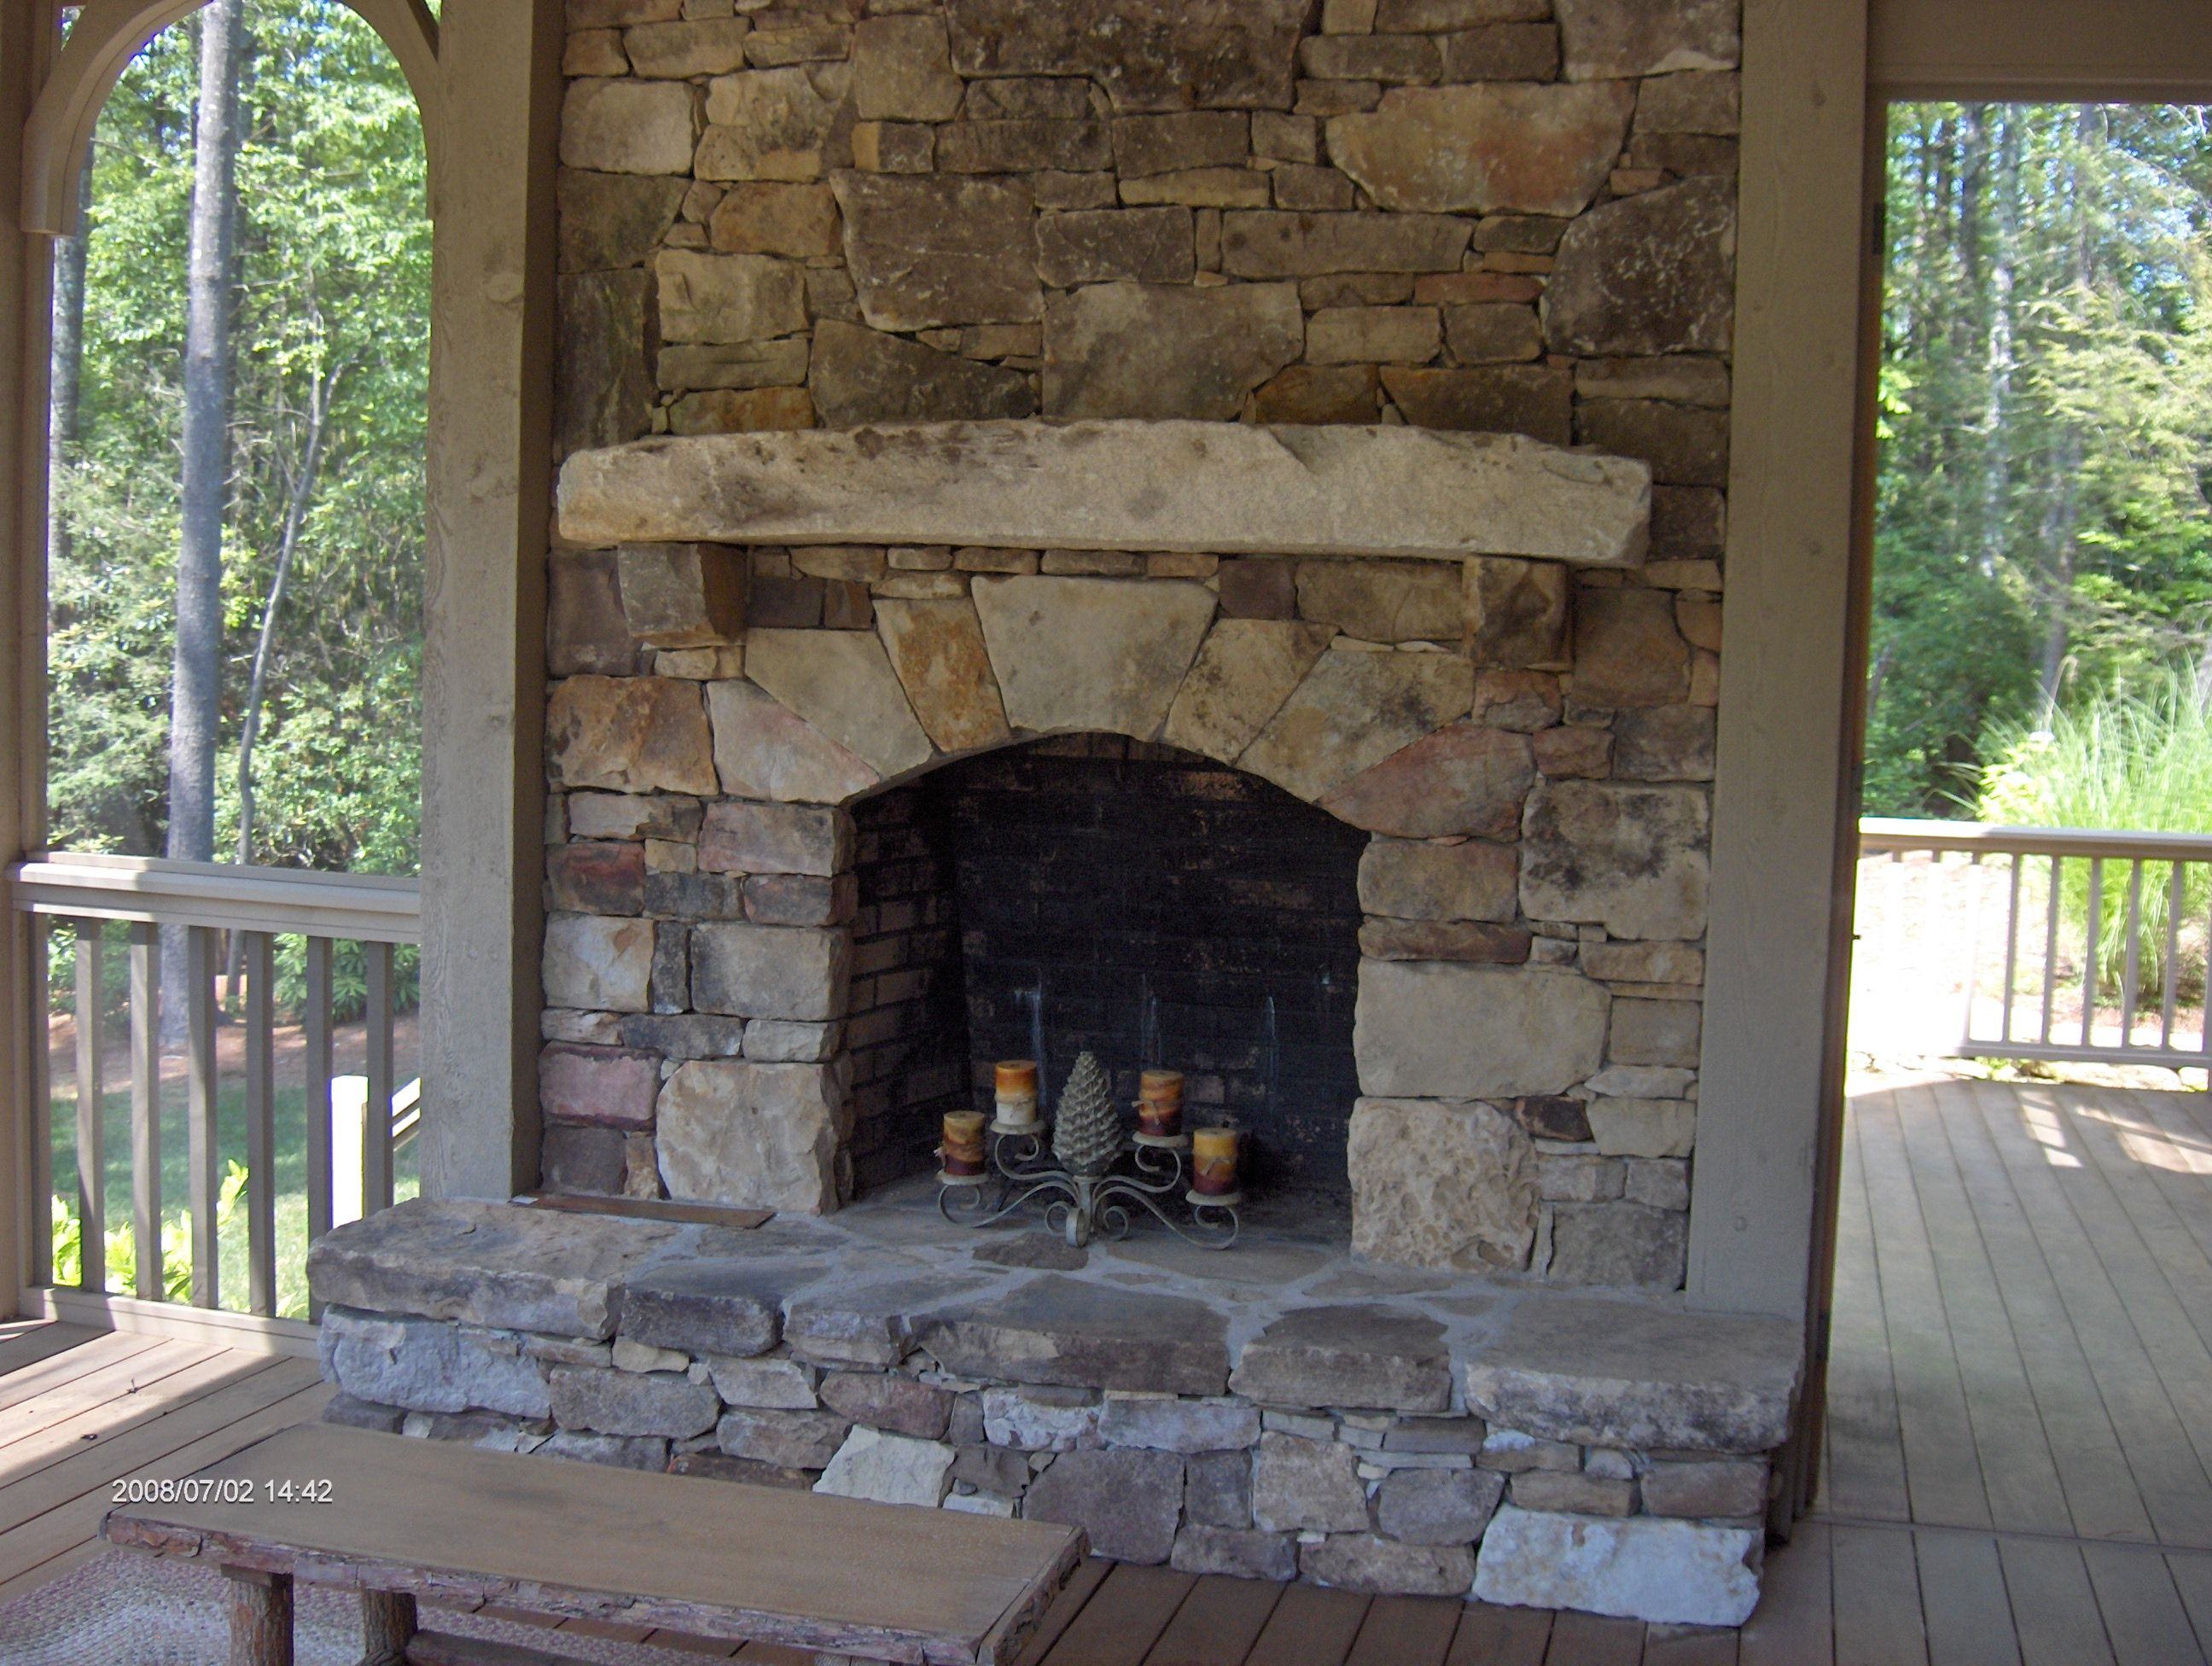 Stacked Stone Fireplace For The Home Pinterest Interiors Inside Ideas Interiors design about Everything [magnanprojects.com]